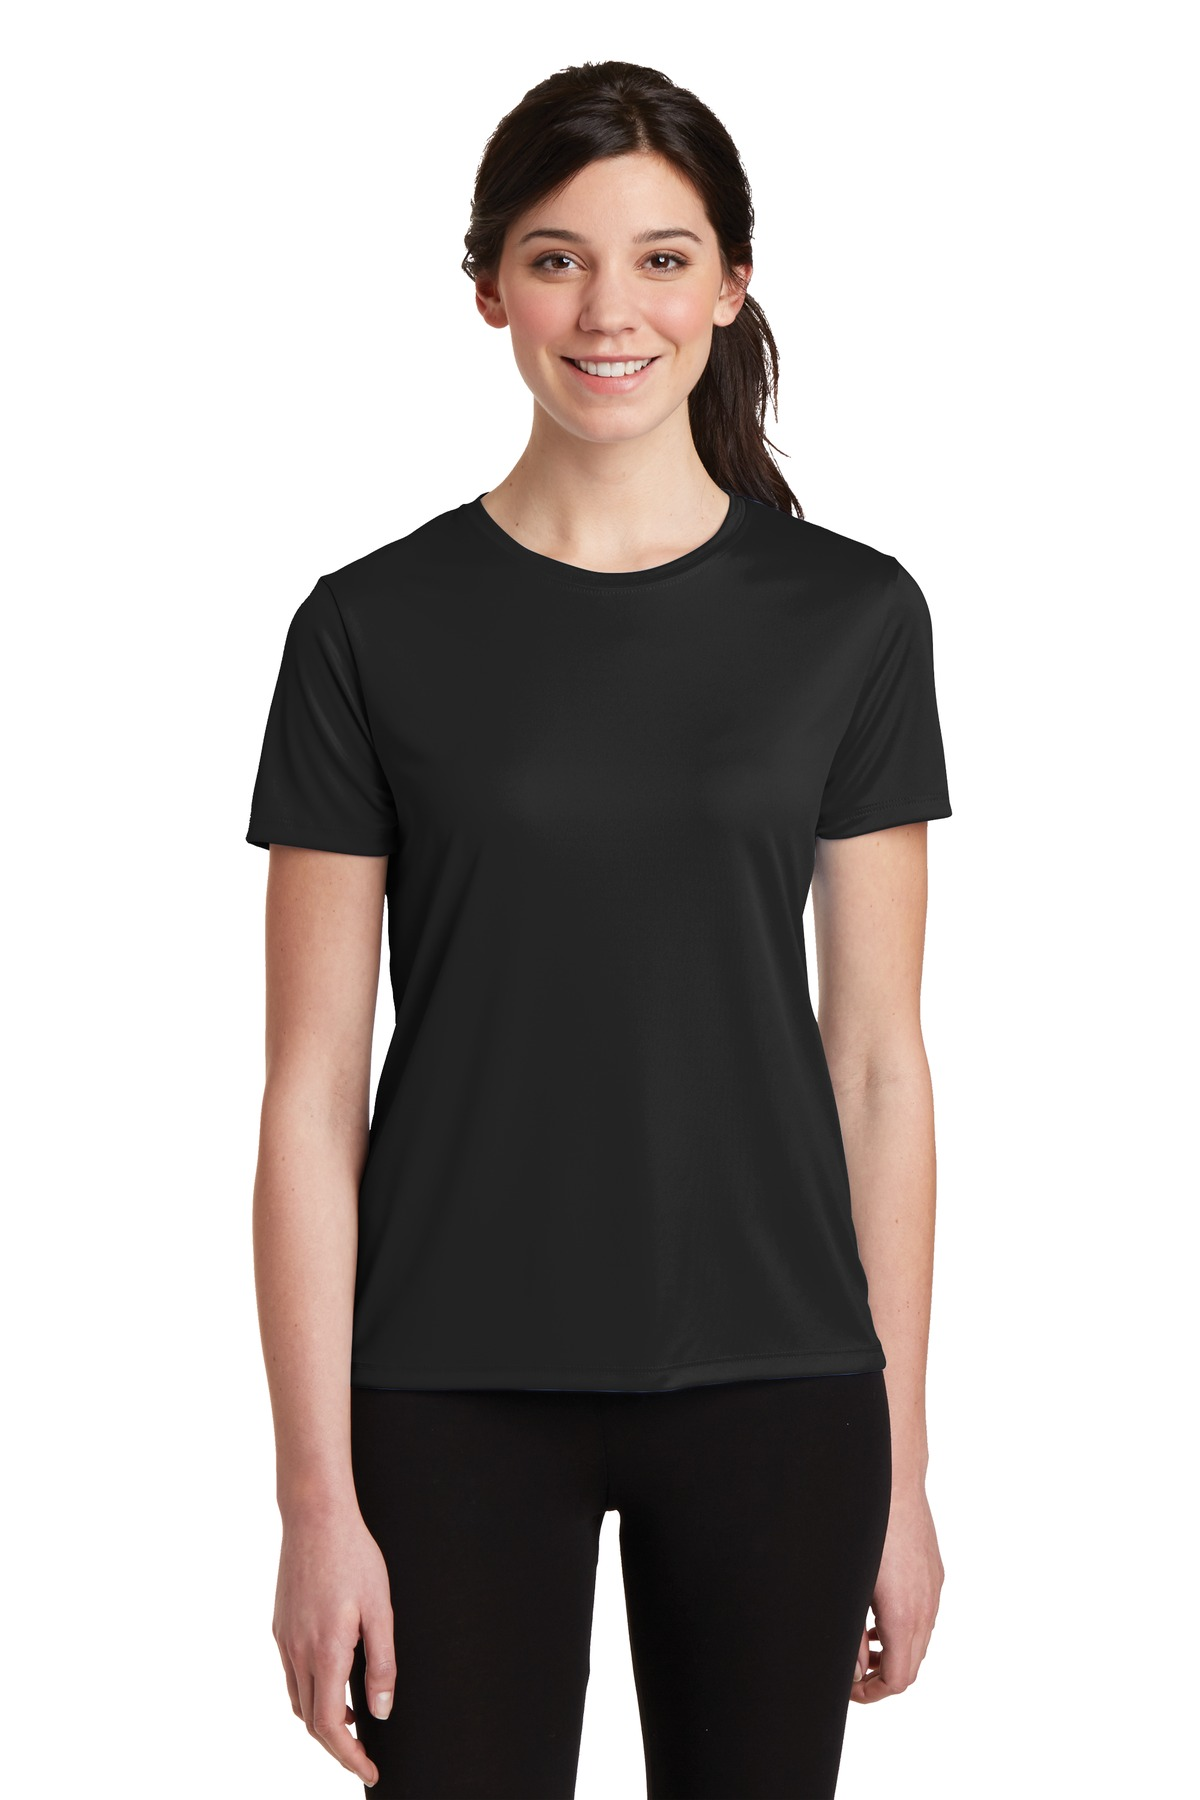 DISCONTINUED Hanes Ladies Cool Dri Performance T-Shirt. 4830